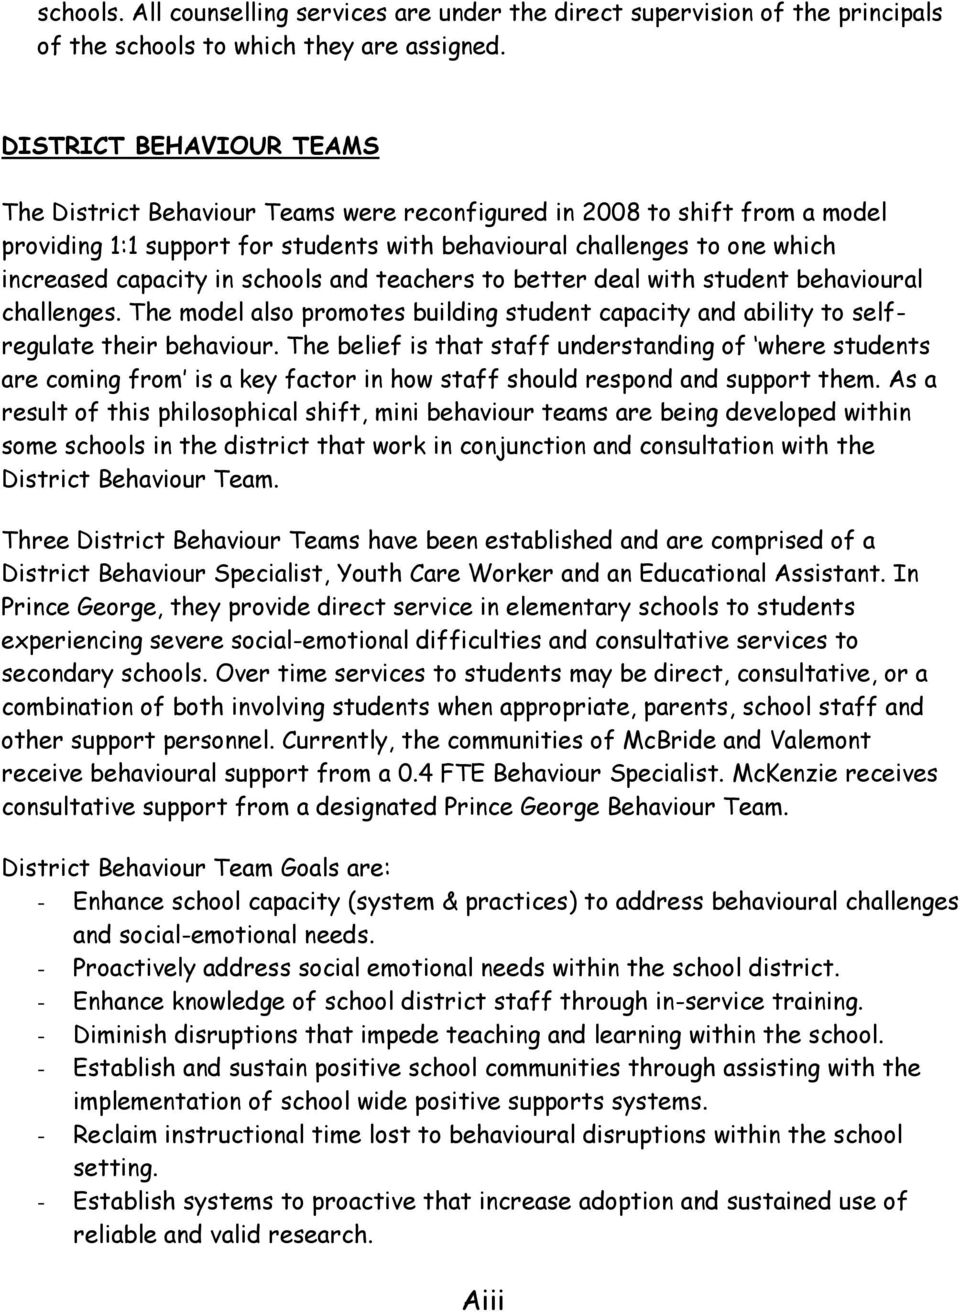 schools and teachers to better deal with student behavioural challenges. The model also promotes building student capacity and ability to selfregulate their behaviour.